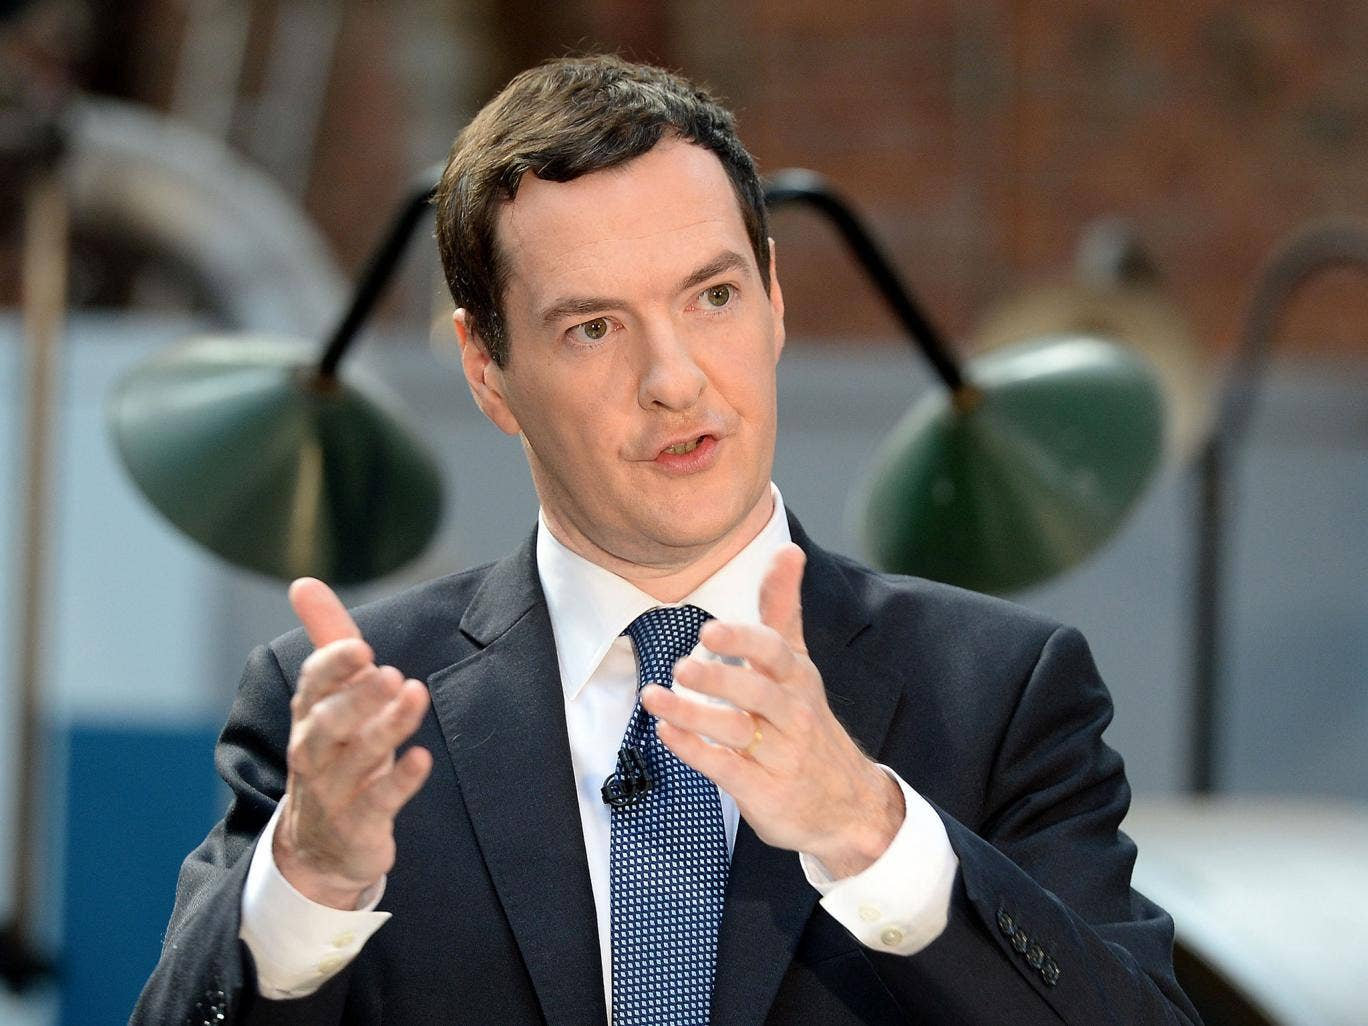 Chancellor George Osborne came close to approving a dramatic move to combine income tax and national insurance in this year's Budget